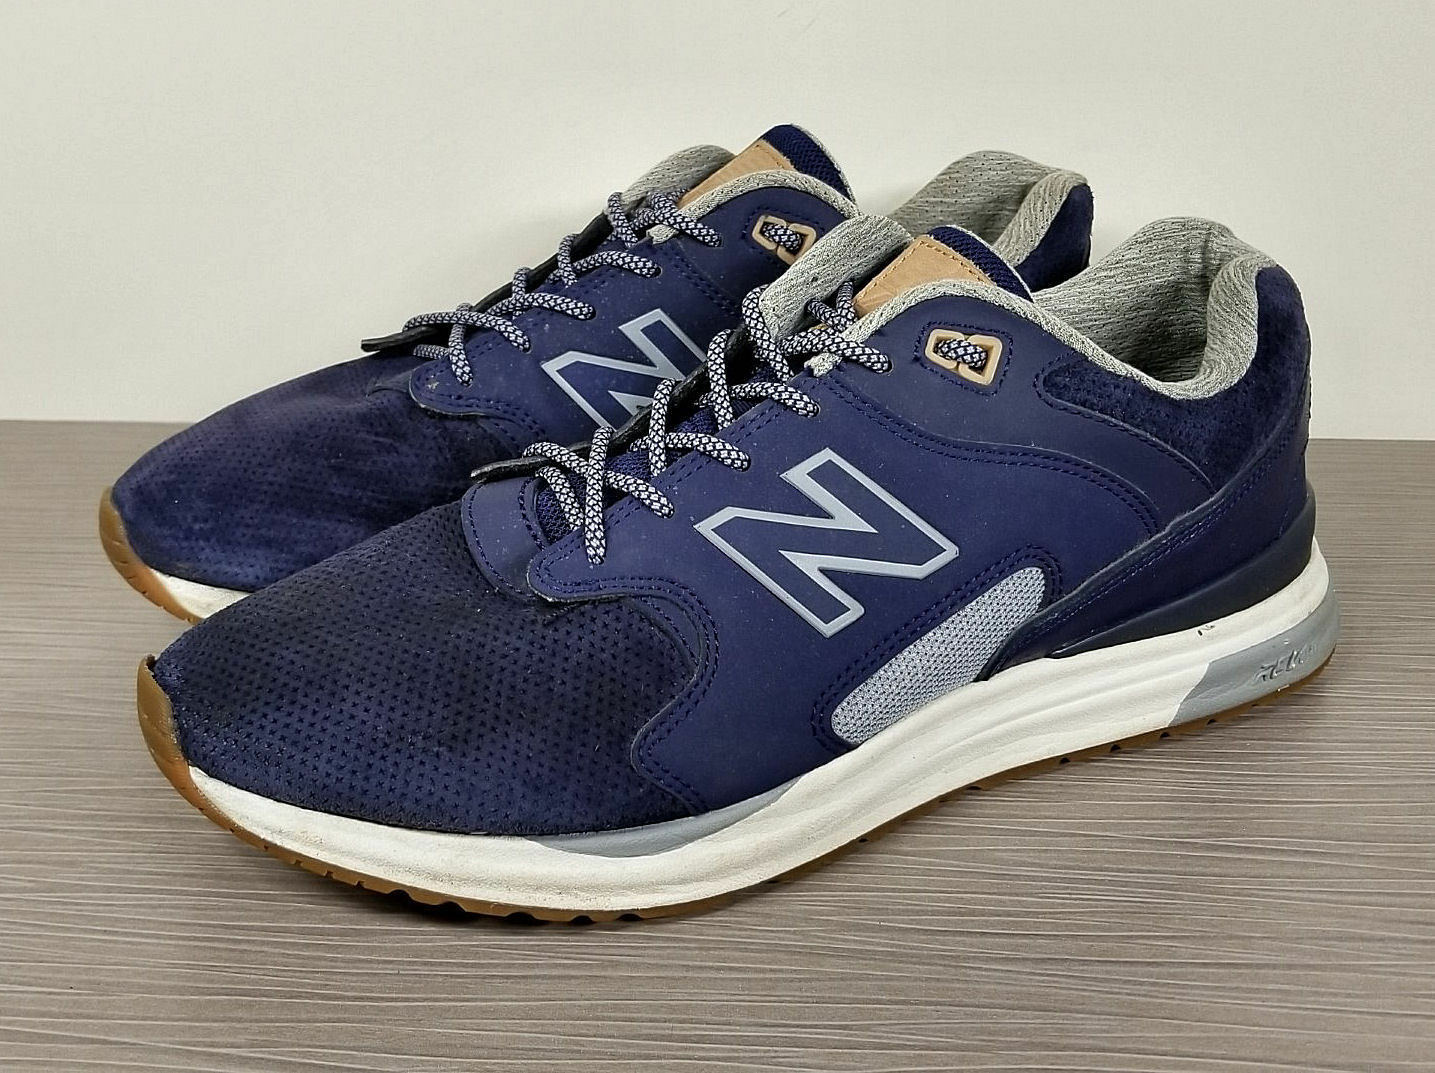 New Balance 1550 Sneaker, bluee Grey Suede, Mens Size 10.5   44.5